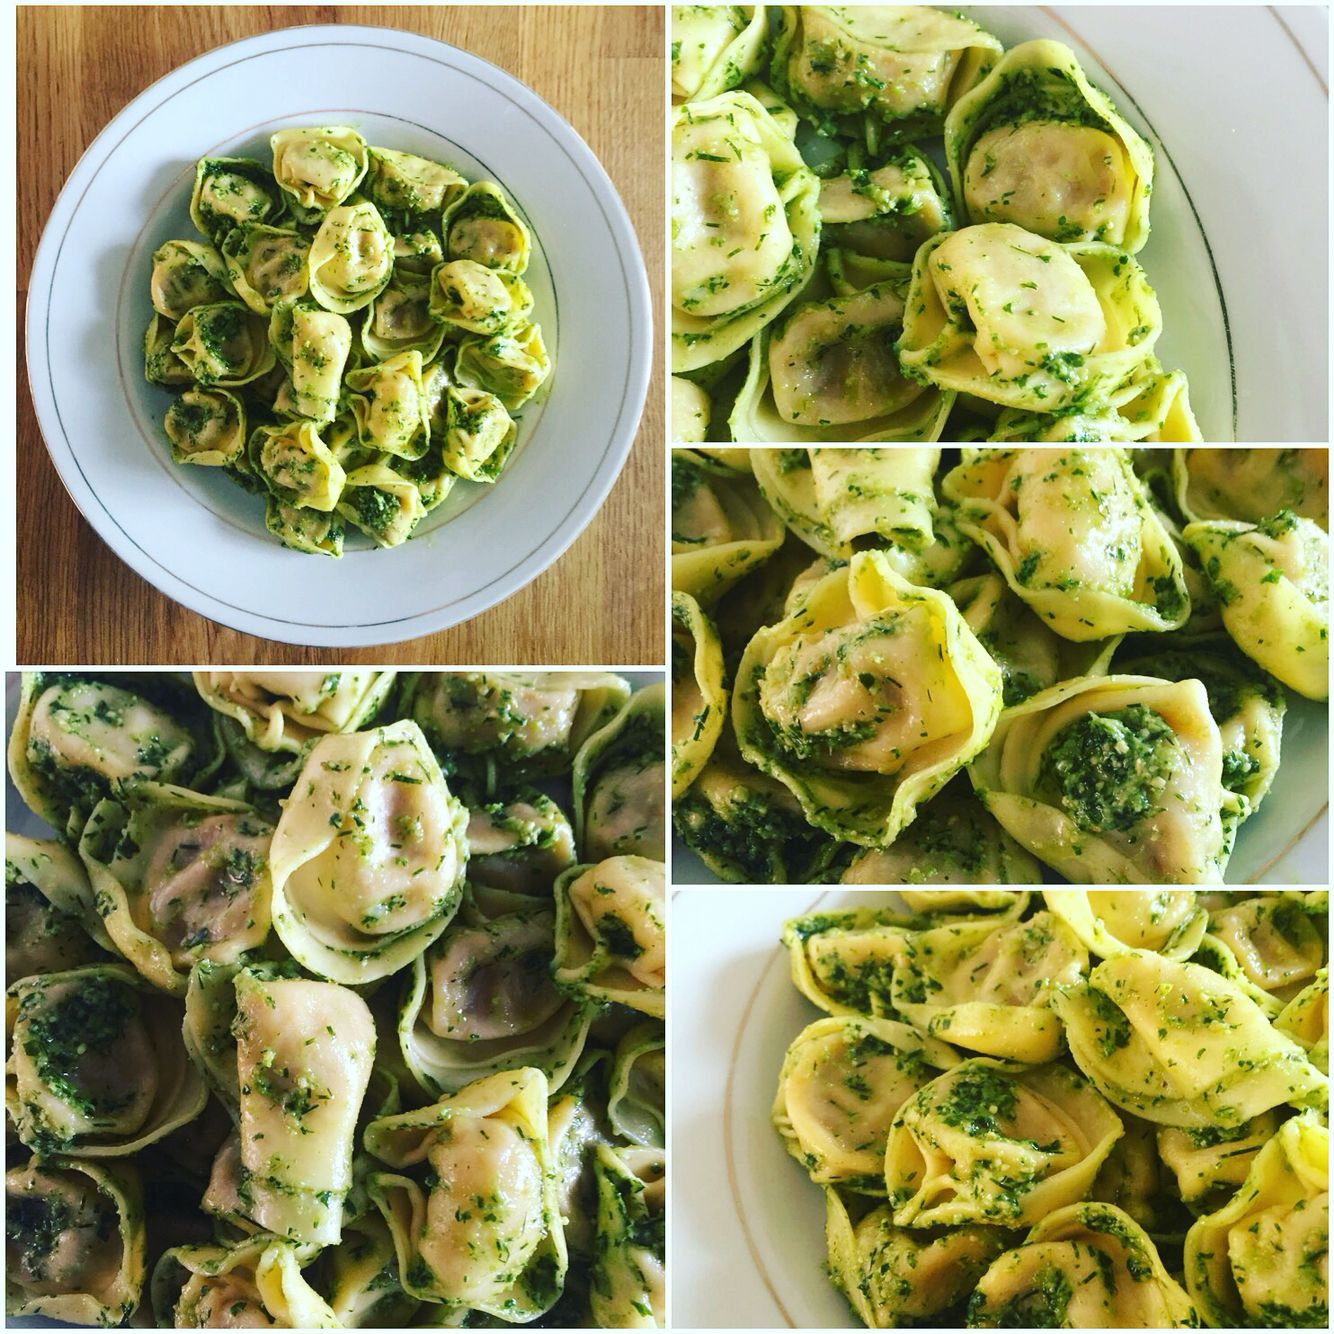 Eat your #carbs in style: I tossed some #storebought #cheese, #tomato and #basil #tortellini with #pesto I made the other day for an #expresslunch before going to work. This is #musclefood that lifts the spirit! #domesticdude #eatright #fastcooking #food #food4gods #foodie #foodporn #nutrition #pasta #pastalover